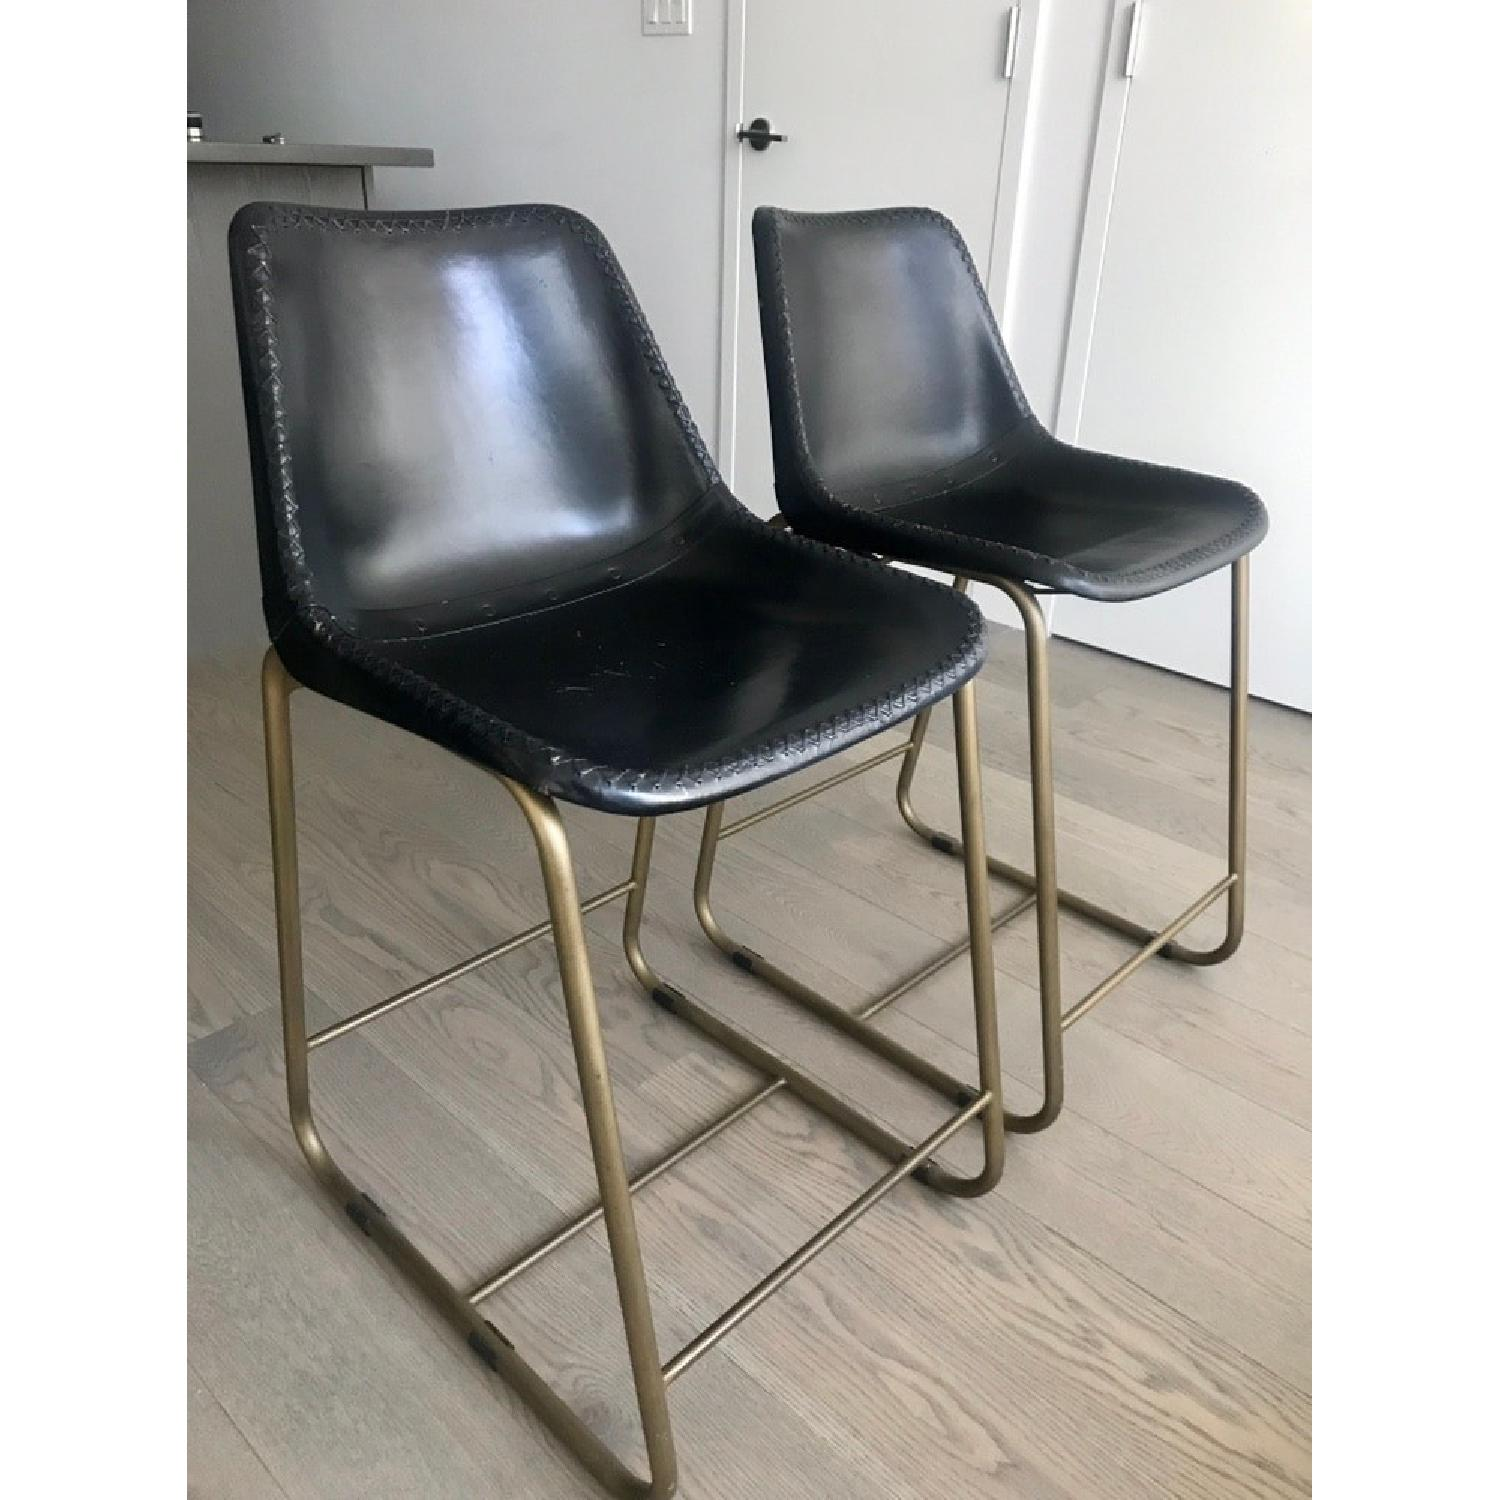 CB2 Roadhouse Black Leather Counter Stools - image-6